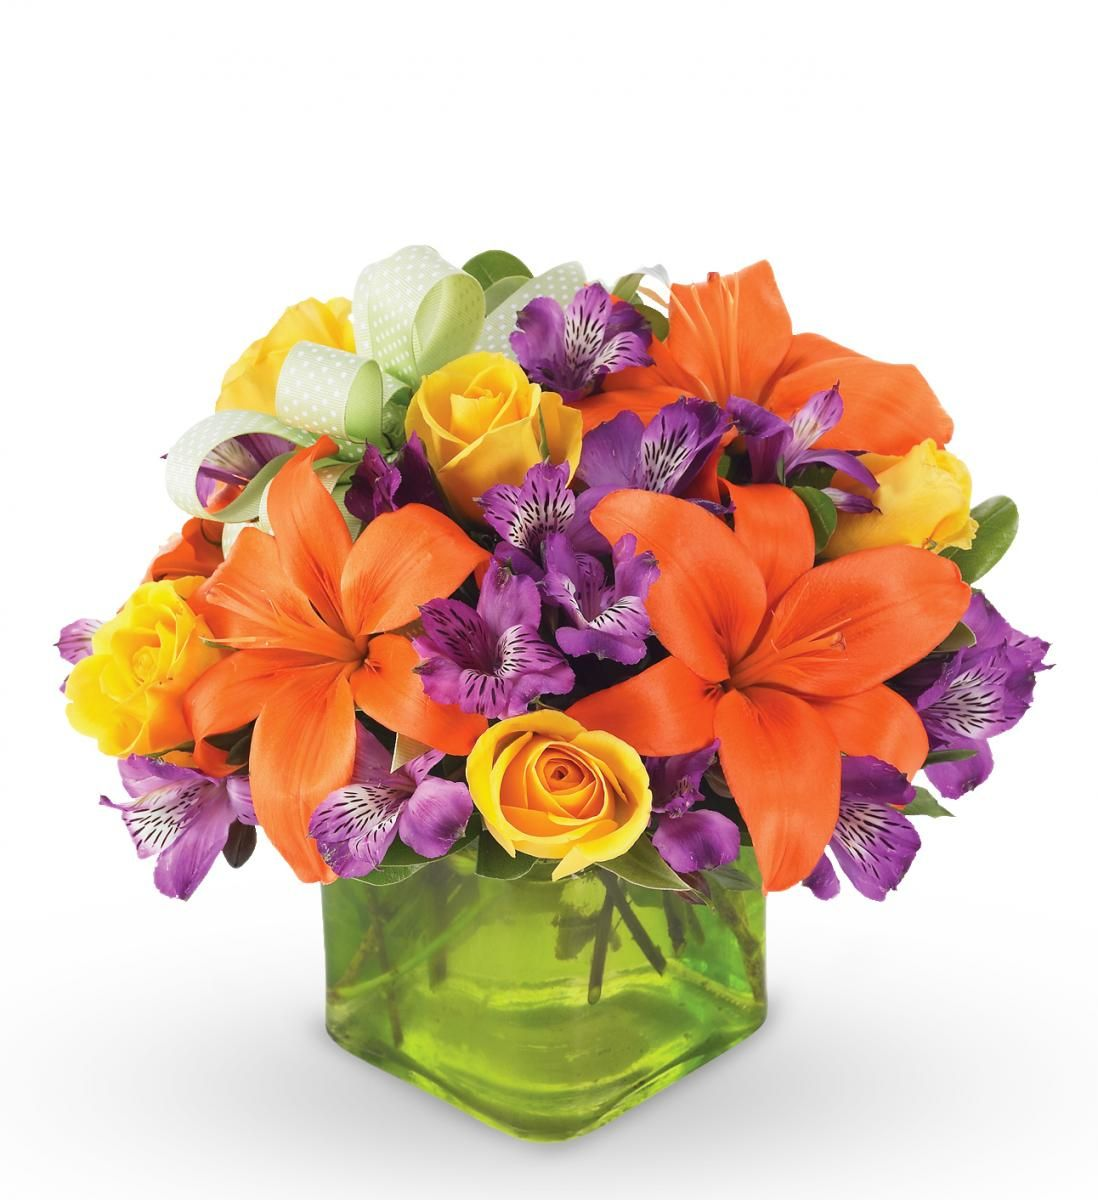 Birthday Bouquet Floral Design Pinterest Products